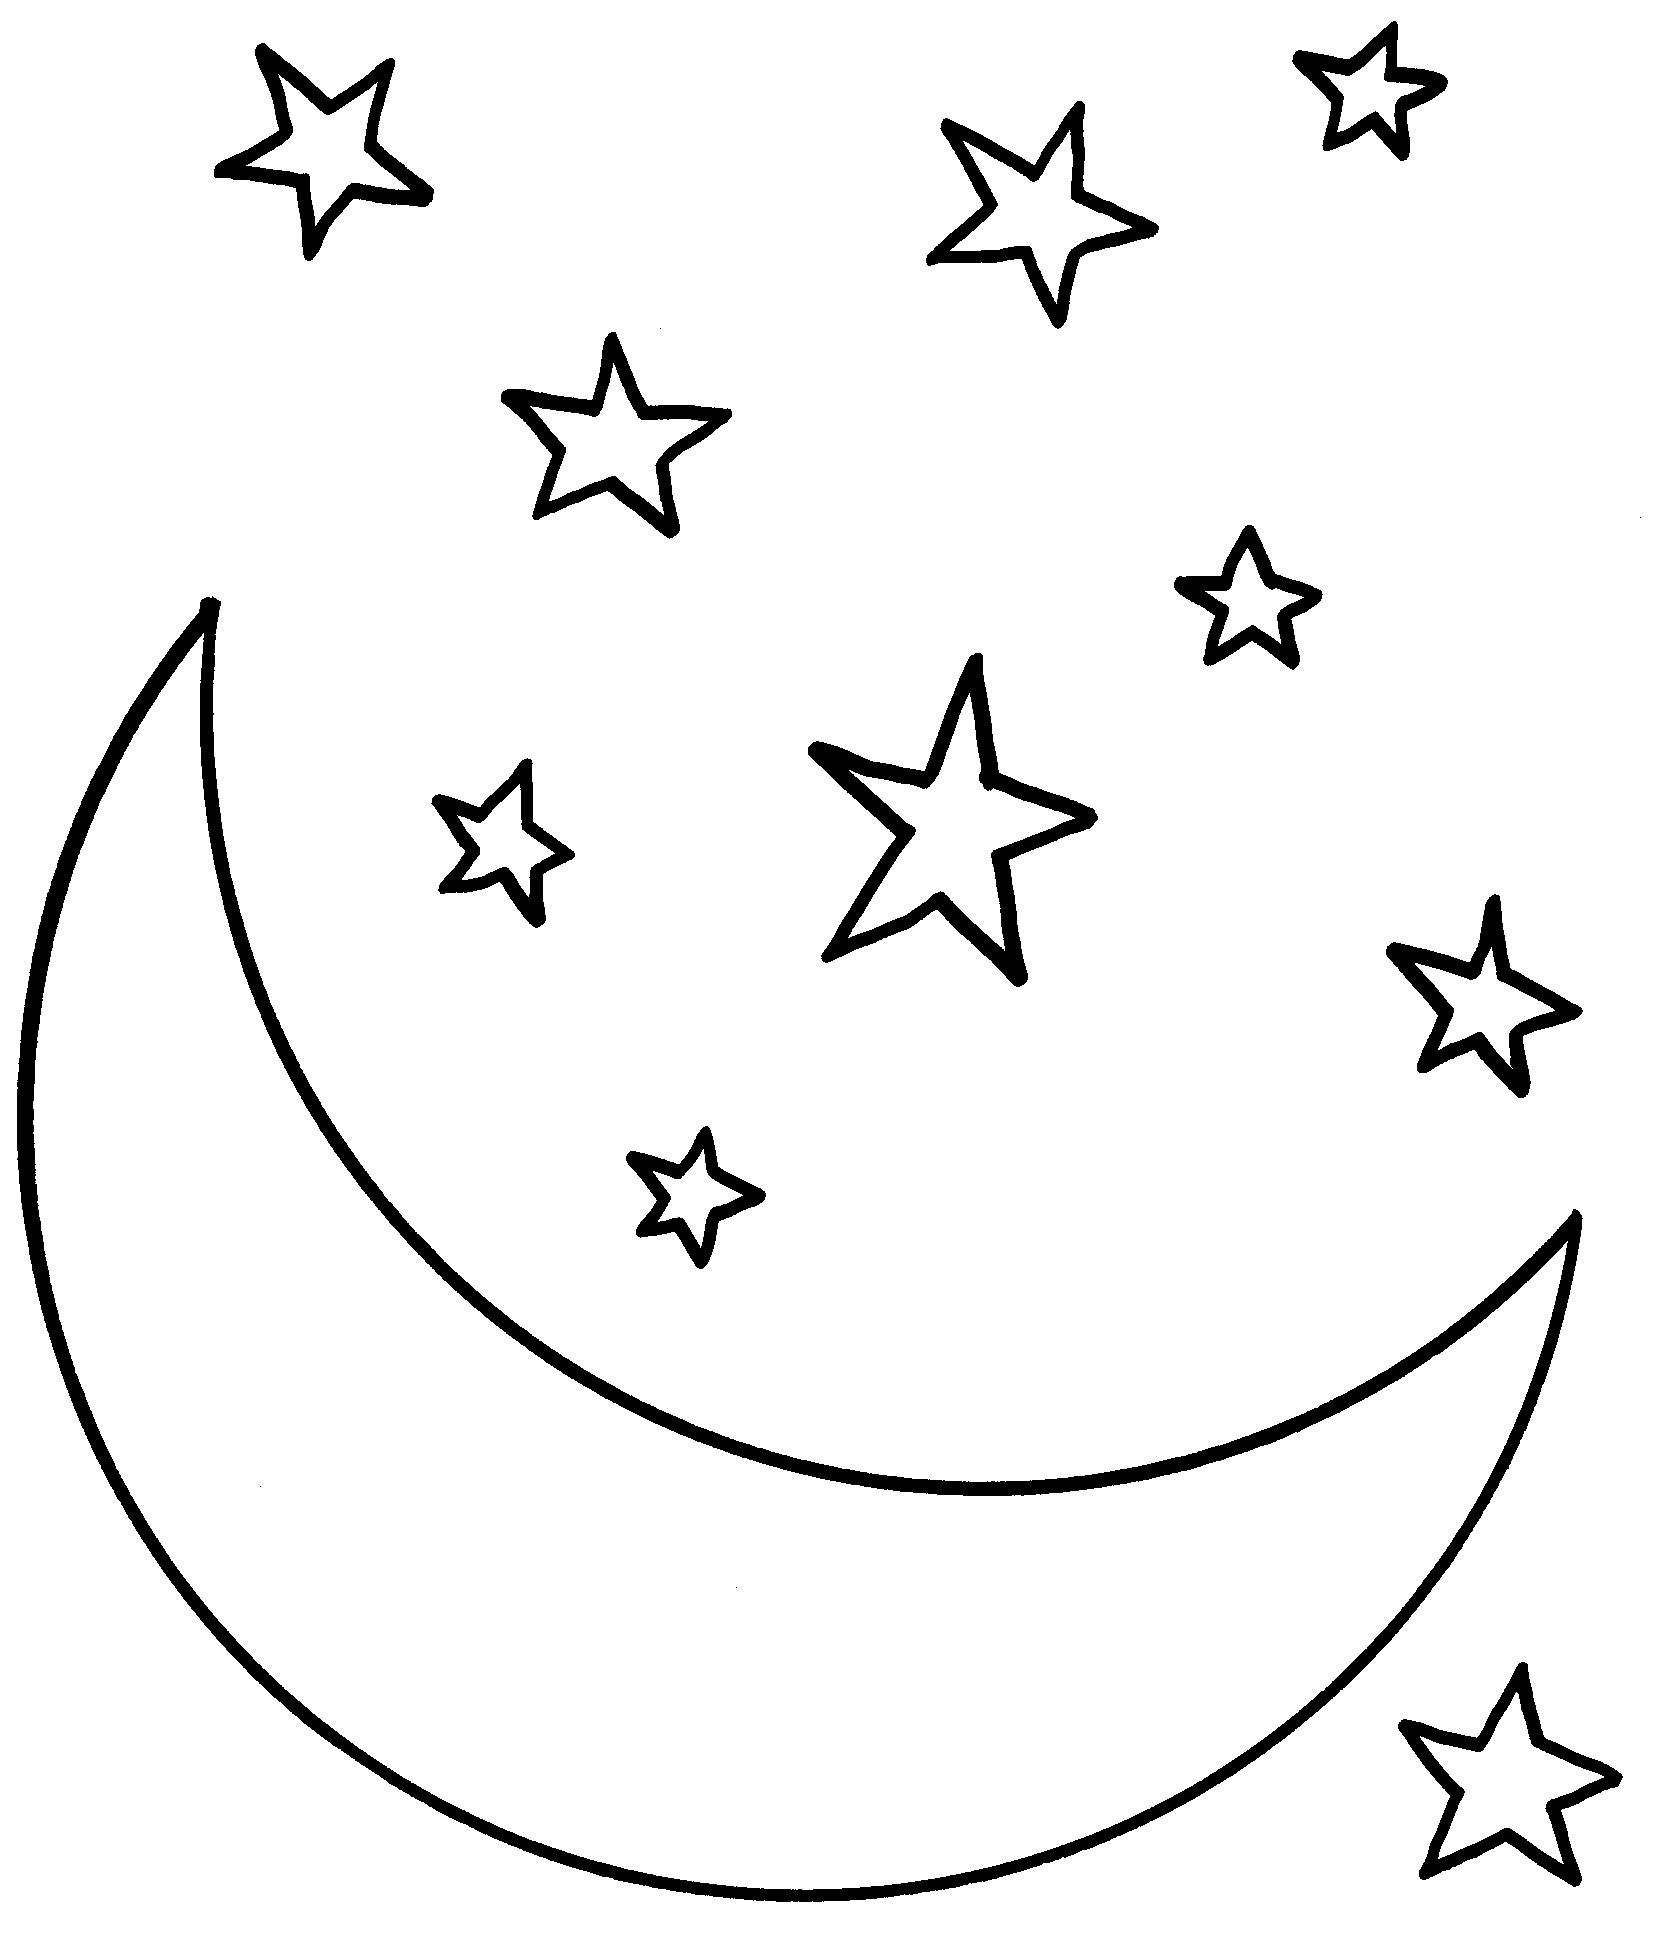 1654x1953 Free Coloring Pages Of Stars And Moon Coloring Pages